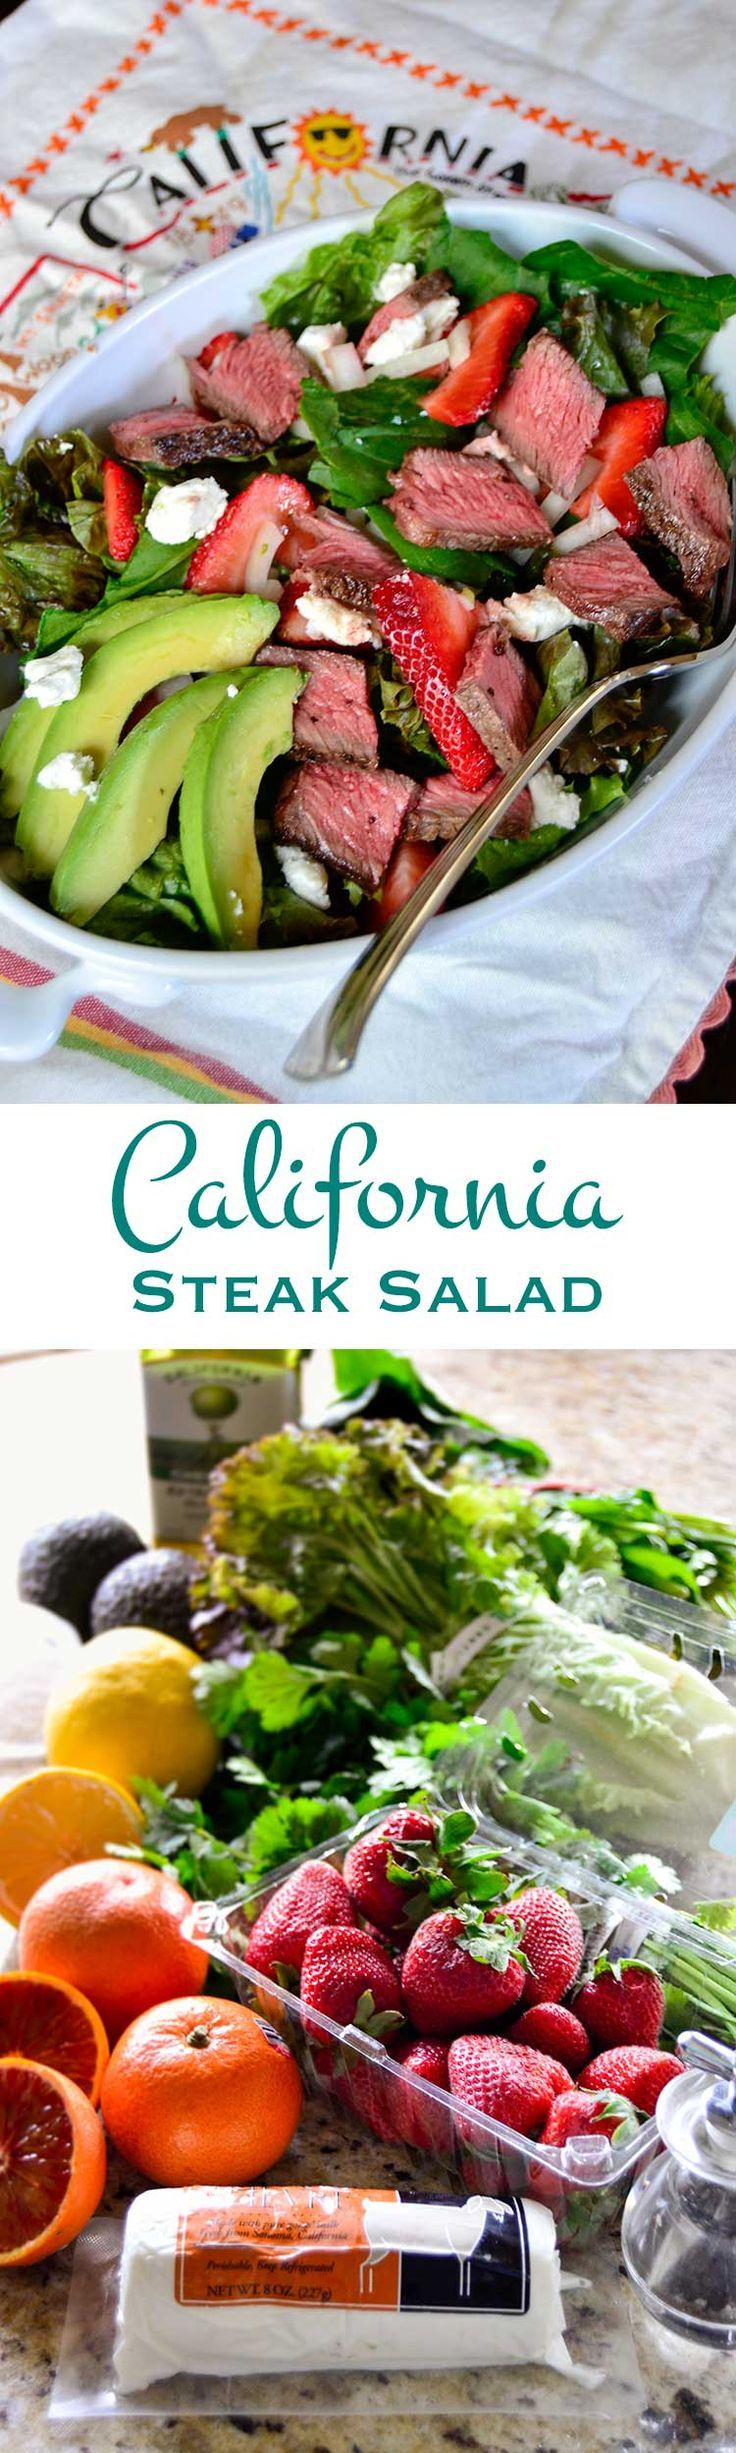 PIN for California steak salad: loaded with tender steak, crunchy greens, juicy strawberries, tangy goat cheese, and topped with a bright, zingy citrus vinaigrette.   #CAonMyPlate #CultivateCA #ad Learn more at Cultivate California: http://clvr.li/1Pj1Y7O